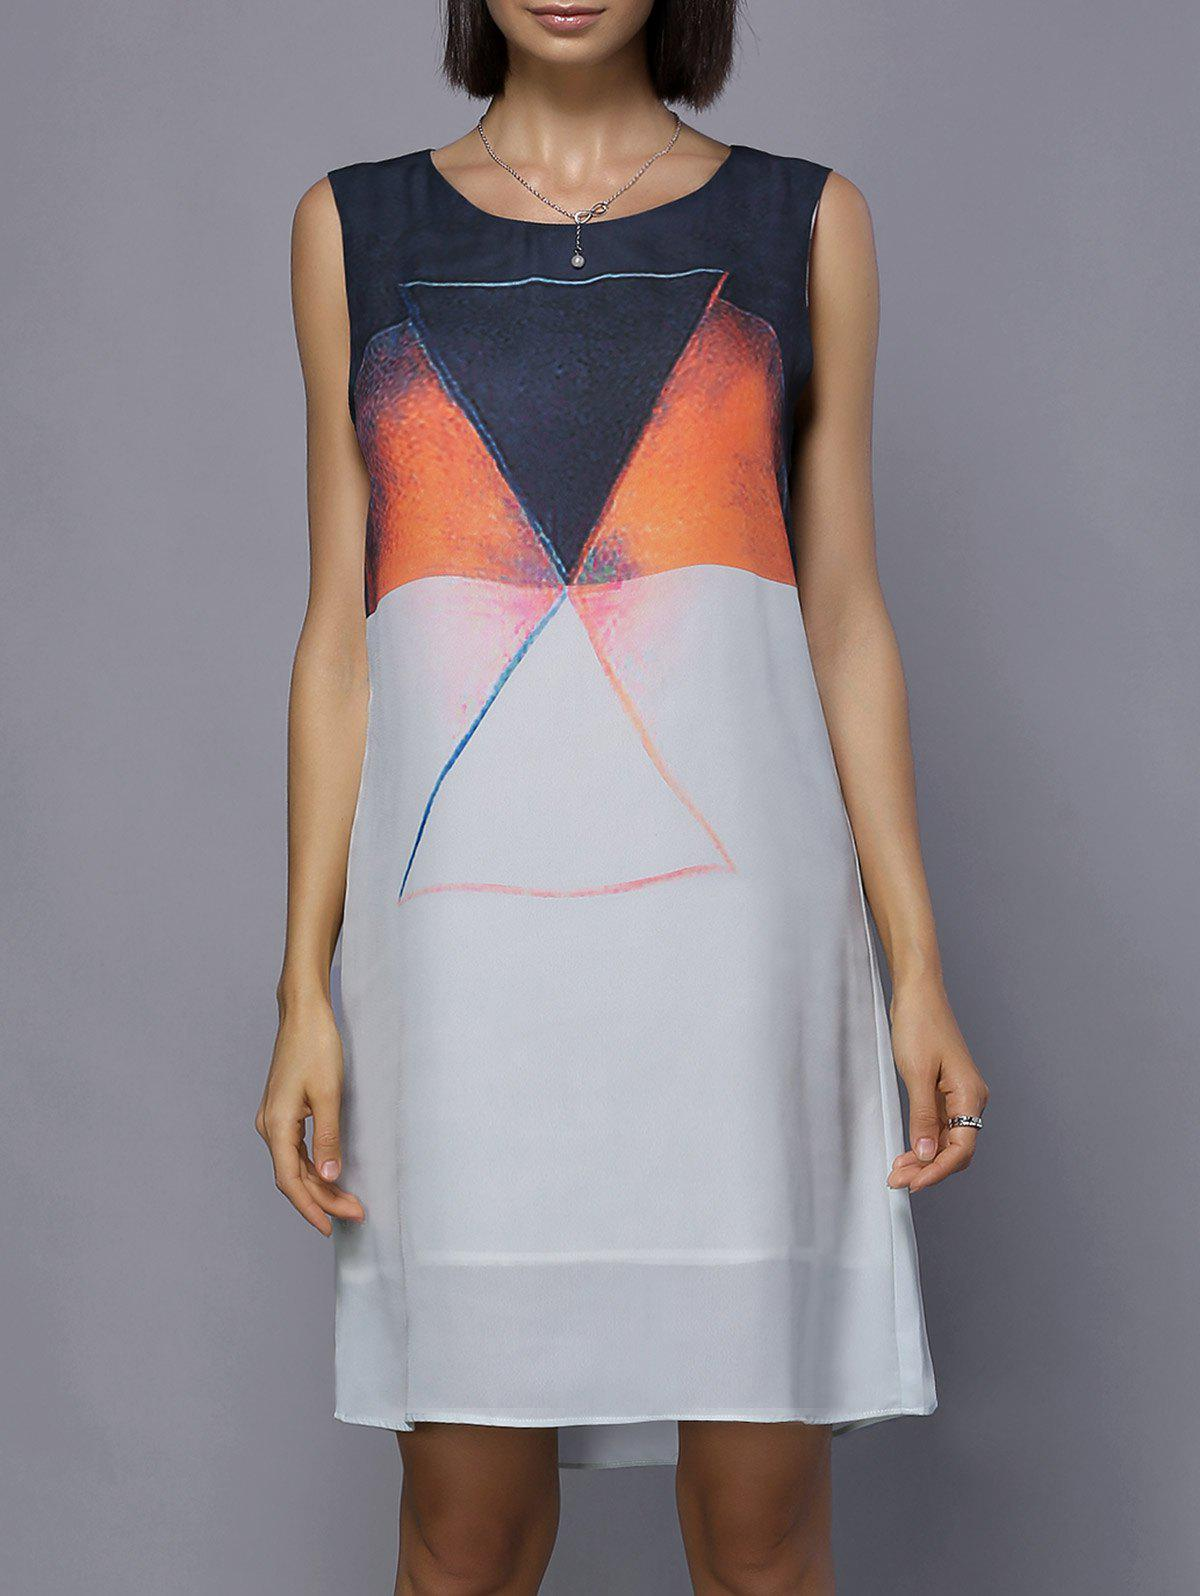 New Fashionable Scoop Neck Sleeveless Color Block Dress For Women